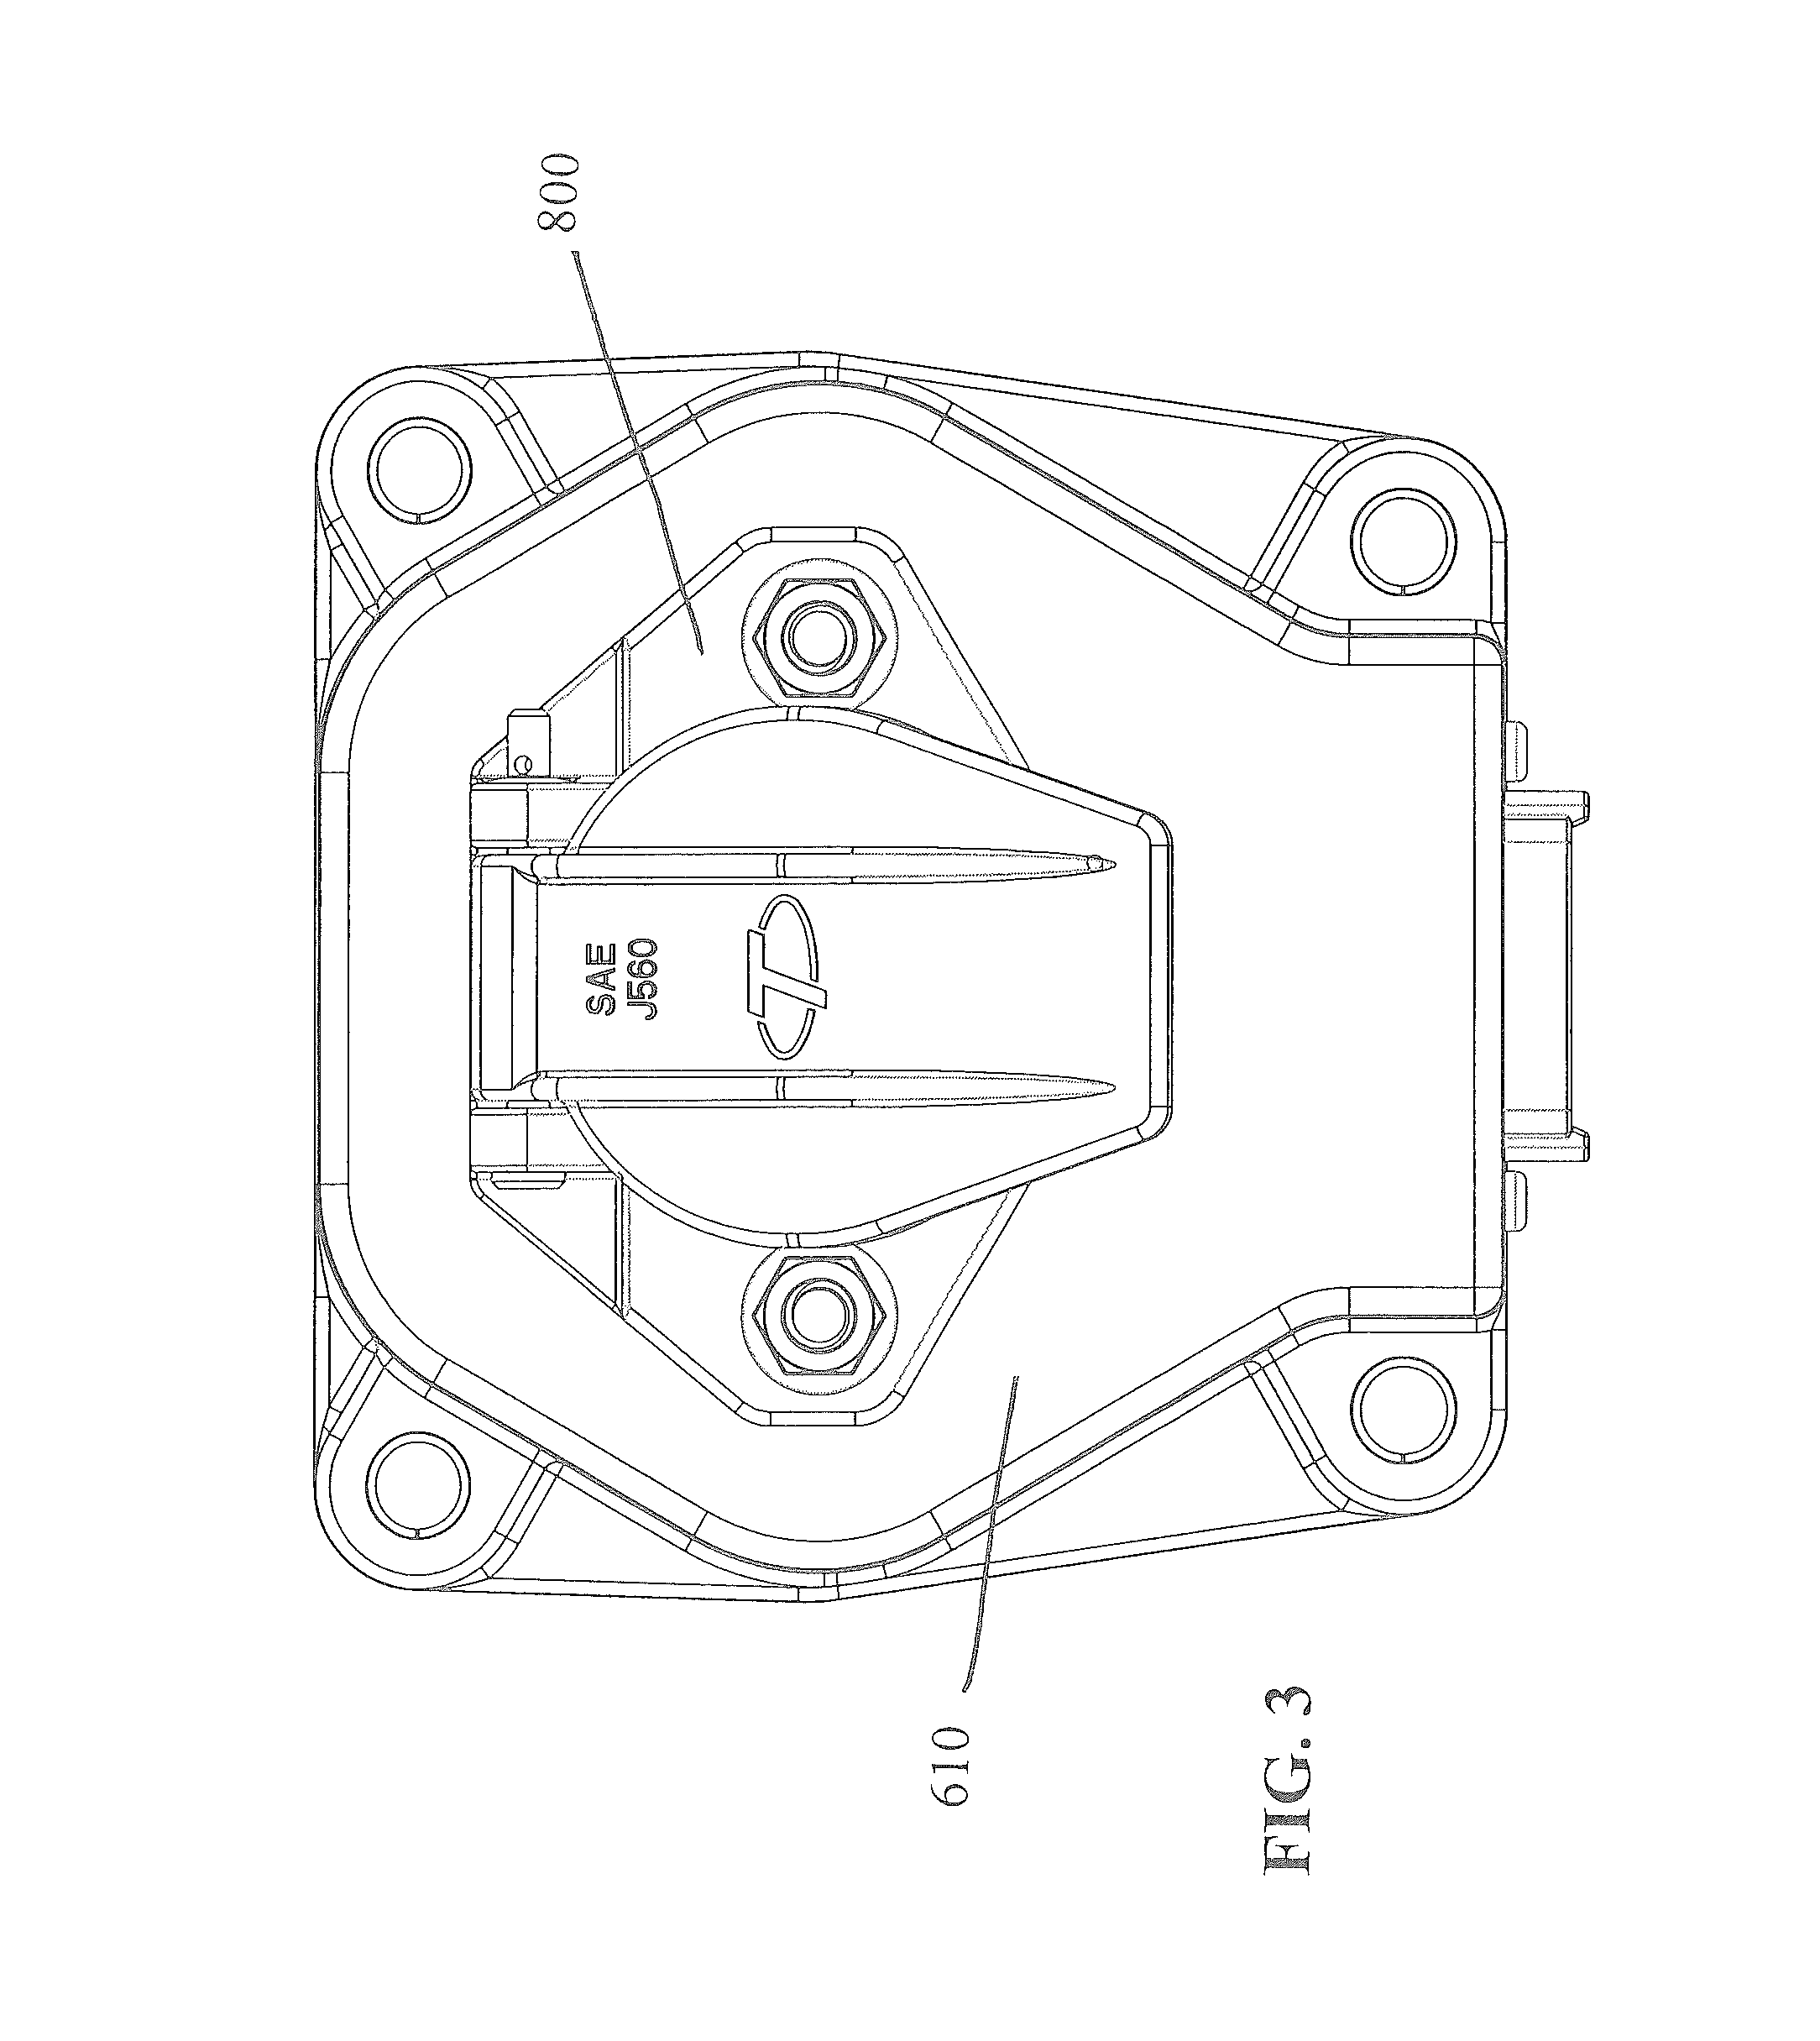 patent us8376758 - receptacle with printed circuit board